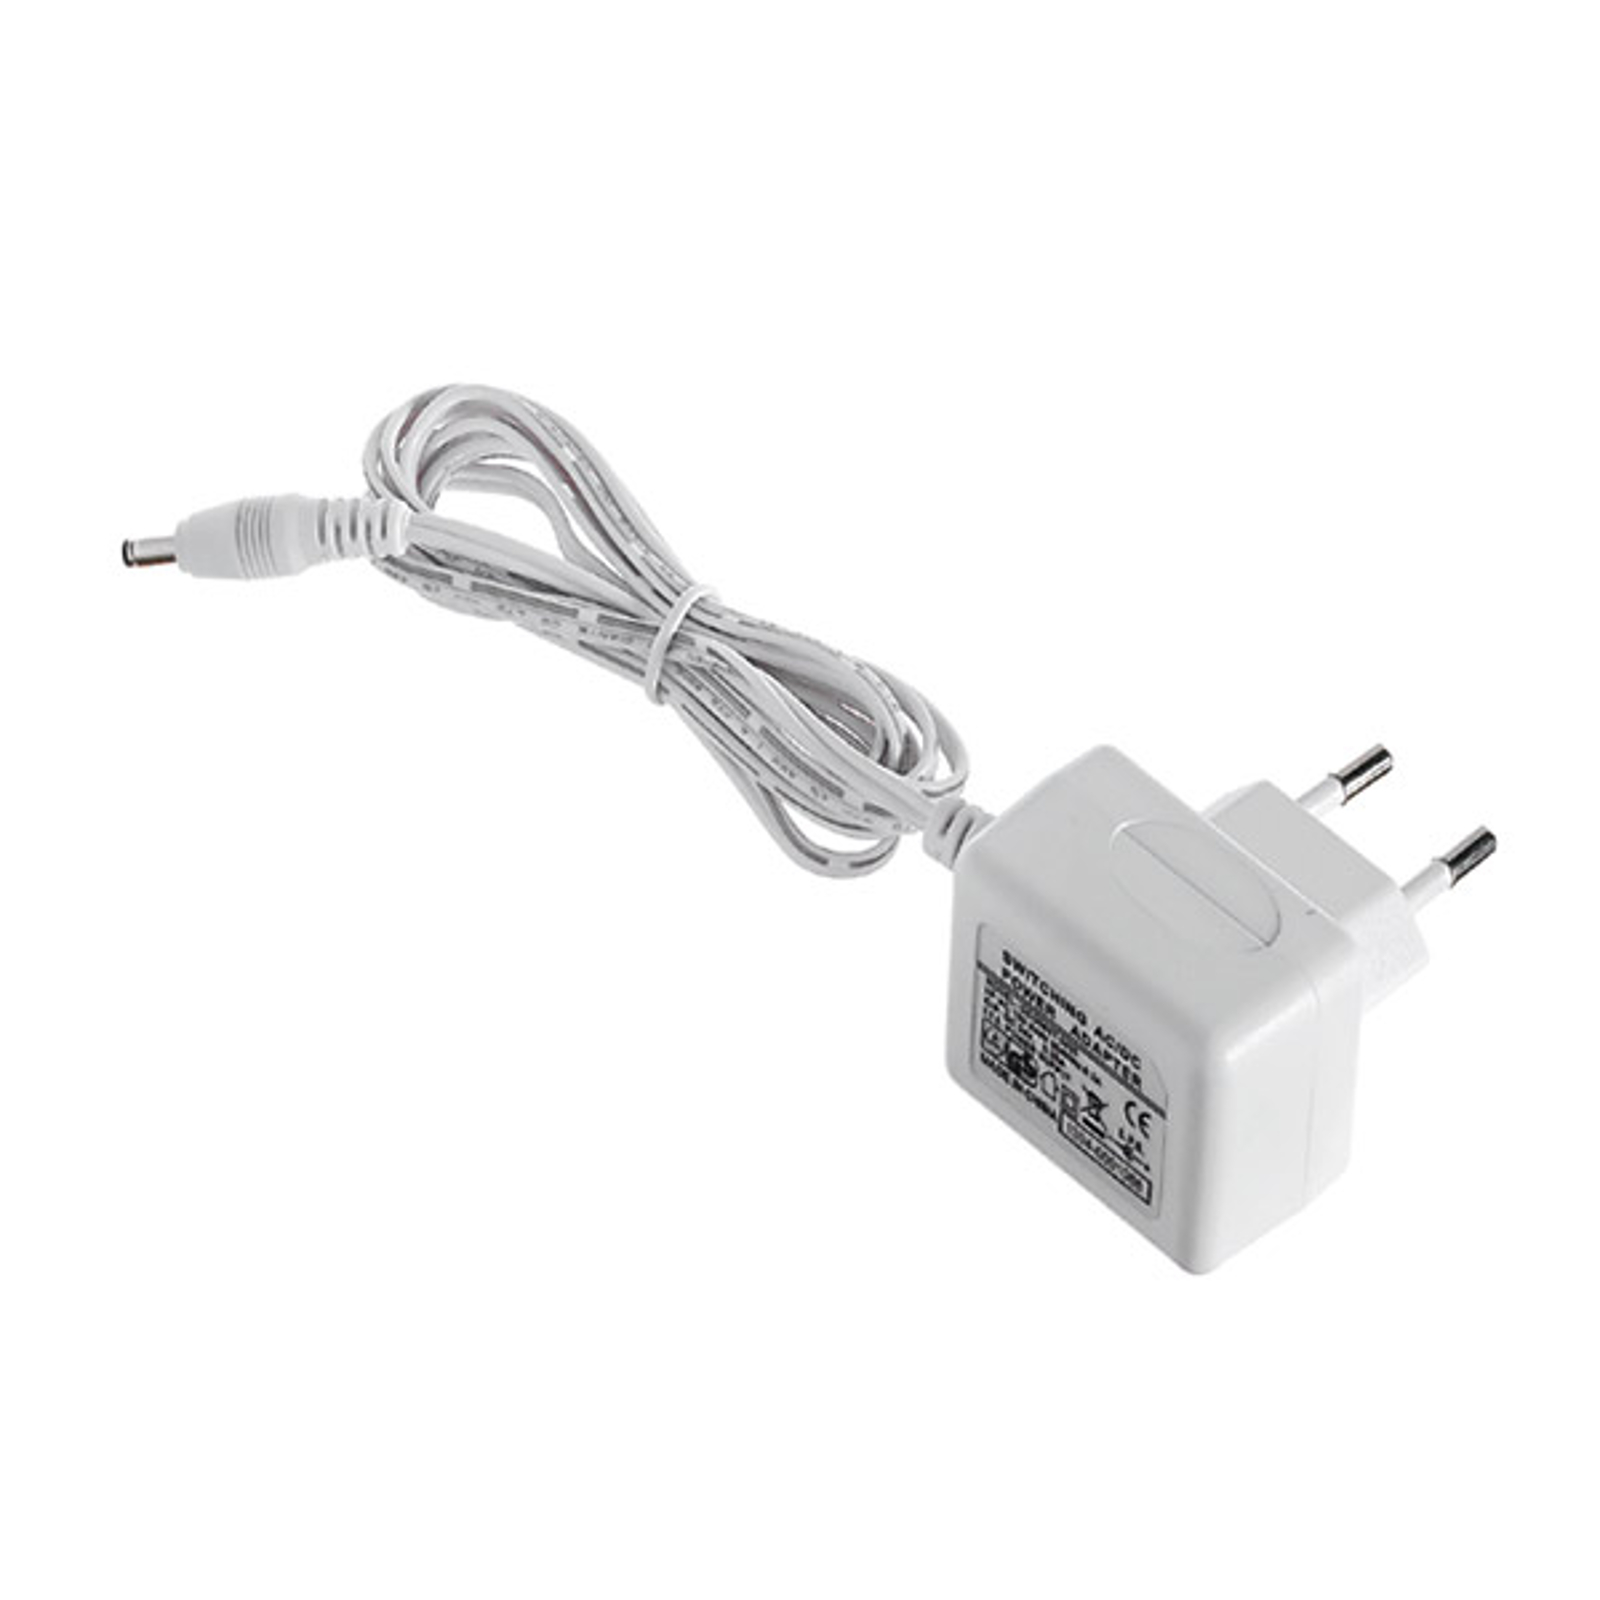 Driver LED 6W, 24V pour Fabas Luce Galway 6690